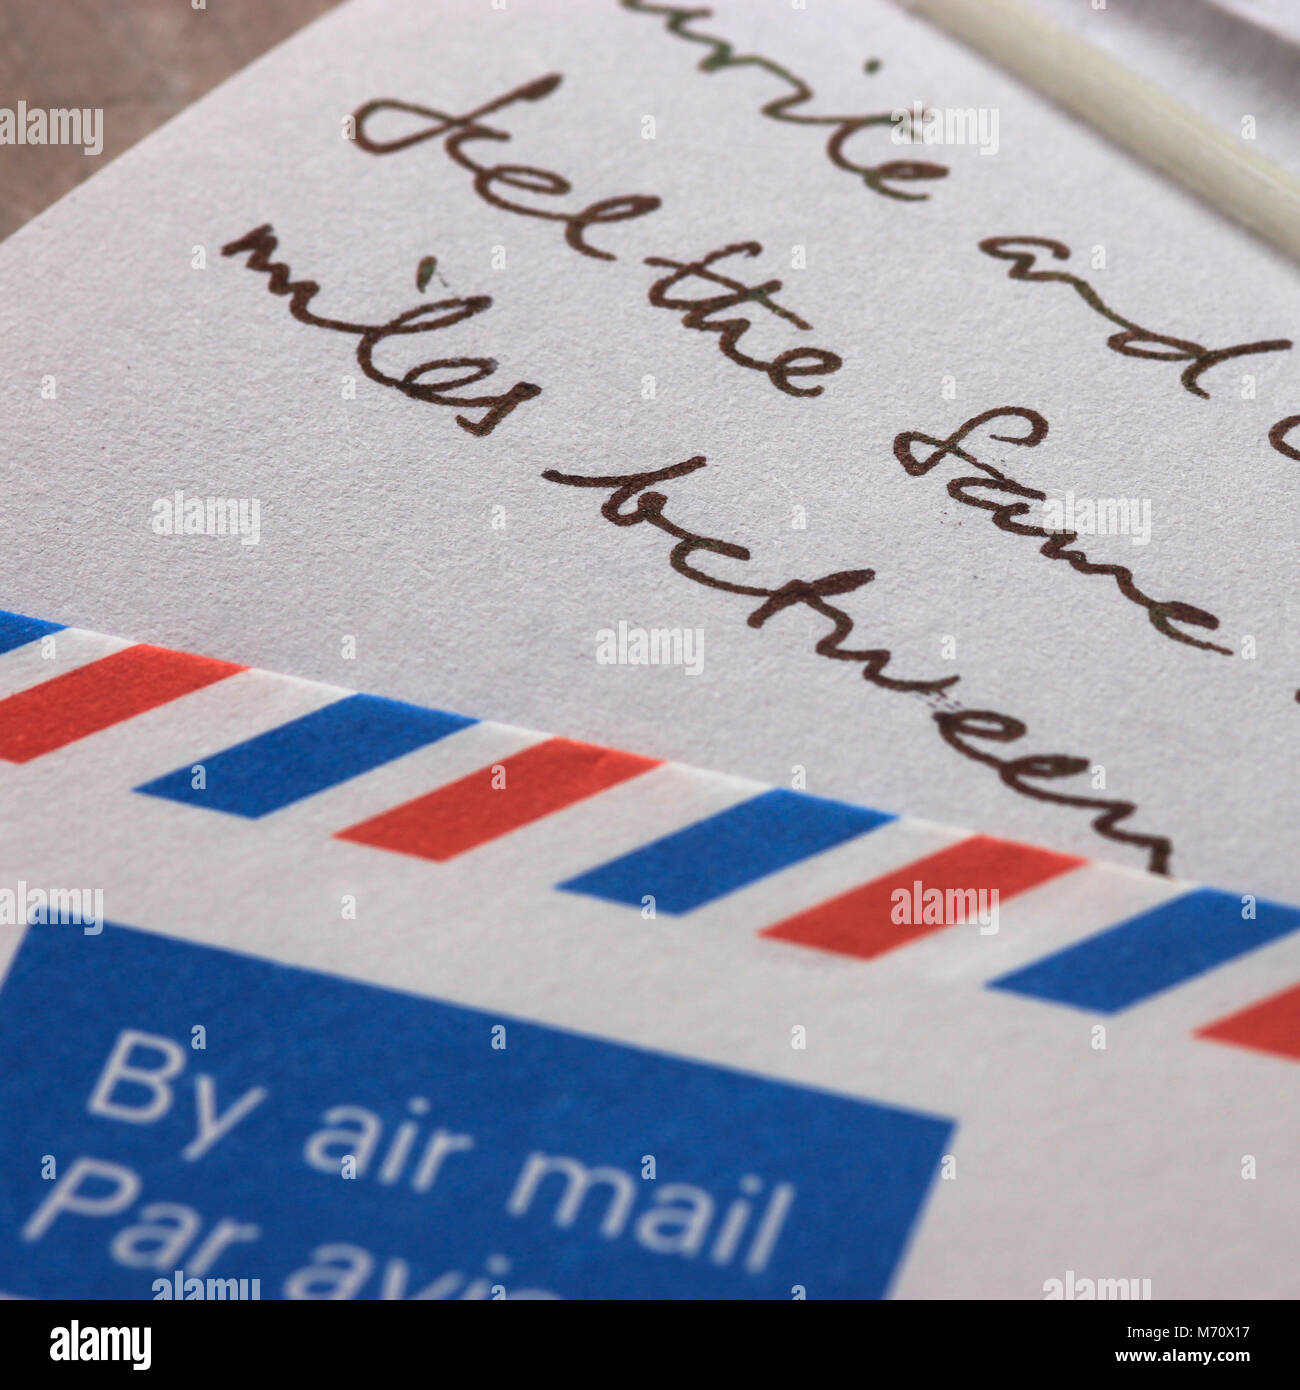 Air Mail envelope with part of hand written letter writing abroad to pen pal family loved ones - Stock Image